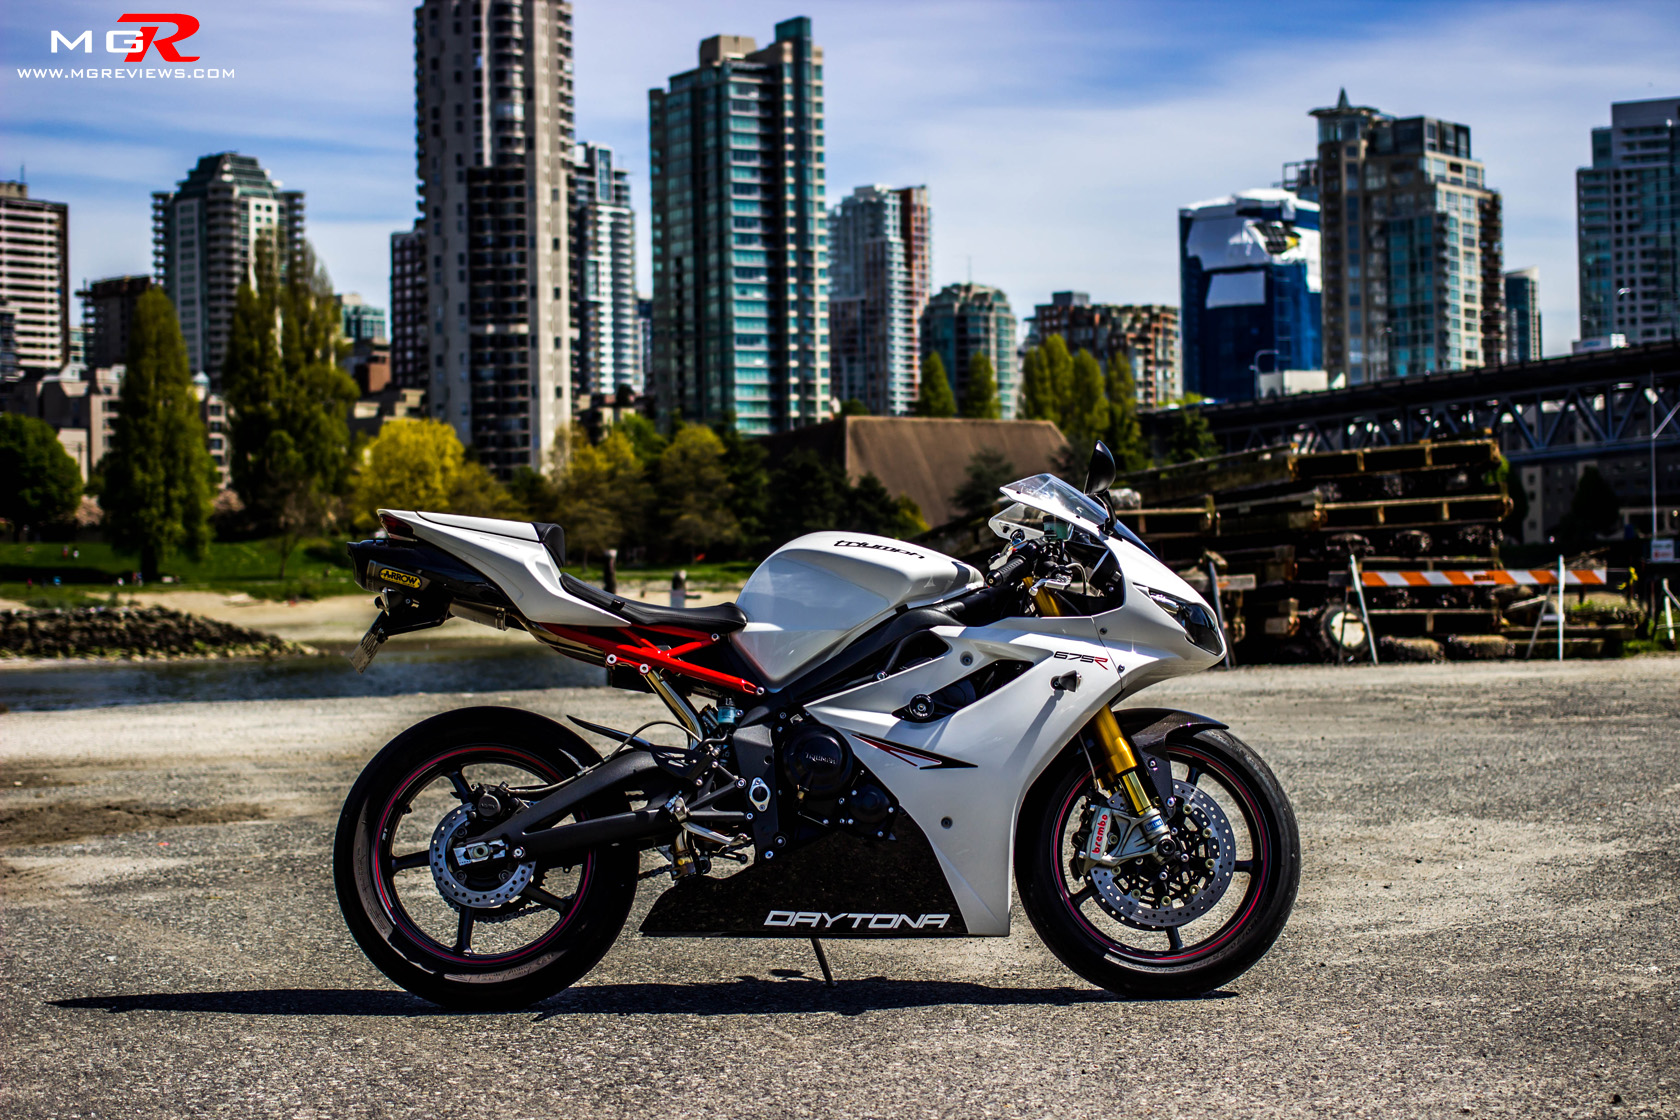 review 2012 triumph daytona 675r m g reviews 2013 Triumph 675R triumph daytona 675r 16